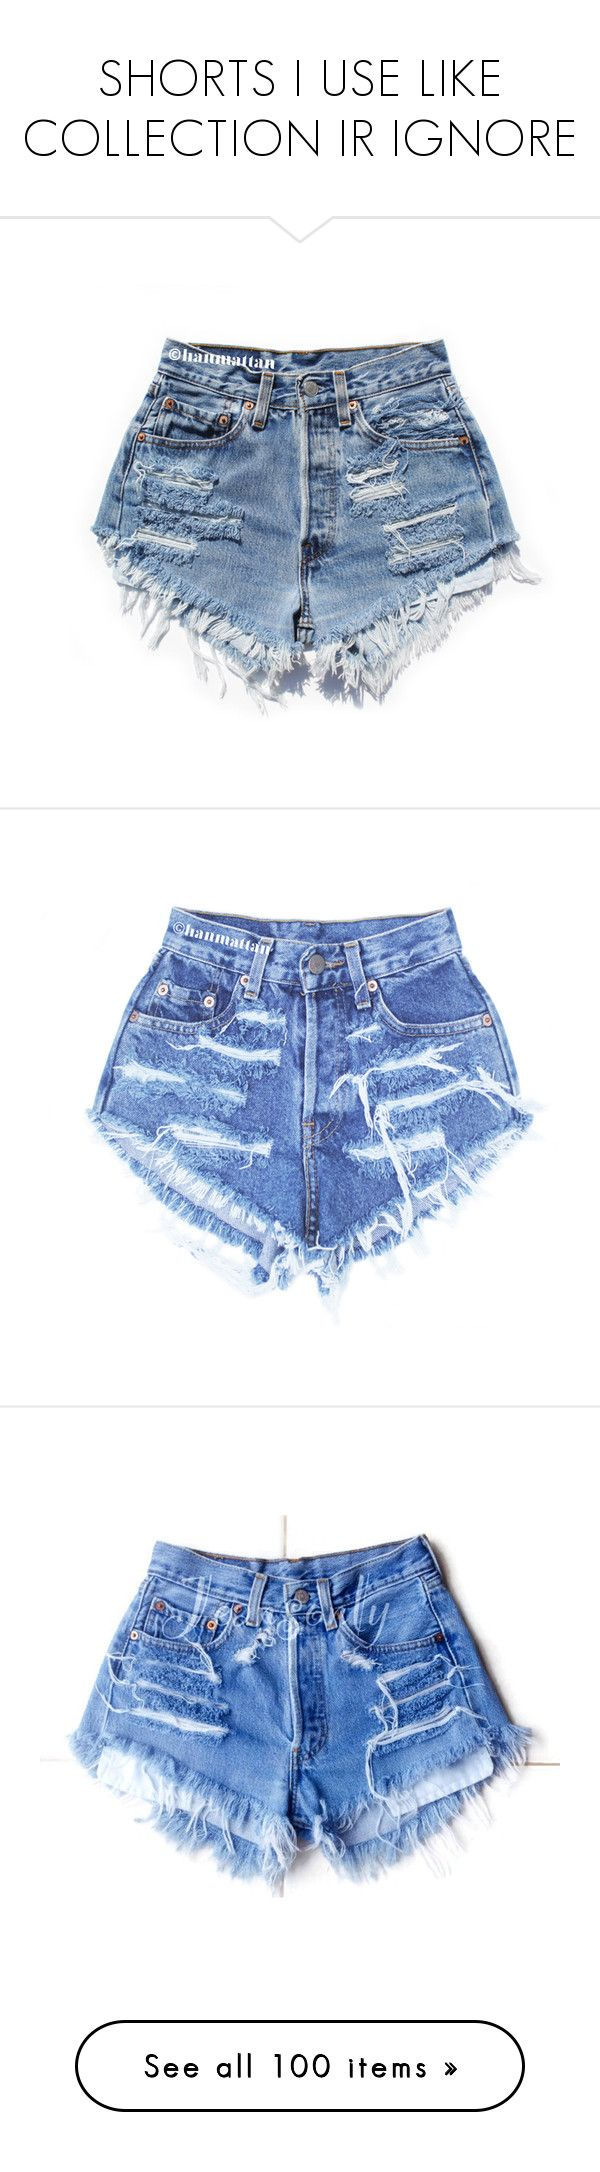 """""""SHORTS I USE LIKE COLLECTION IR IGNORE"""" by myra-moore ❤ liked on Polyvore featuring shorts, bottoms, pants, short, high waisted jean shorts, high-waisted shorts, distressed denim shorts, ripped jean shorts, short jean shorts and shorts/skirts"""